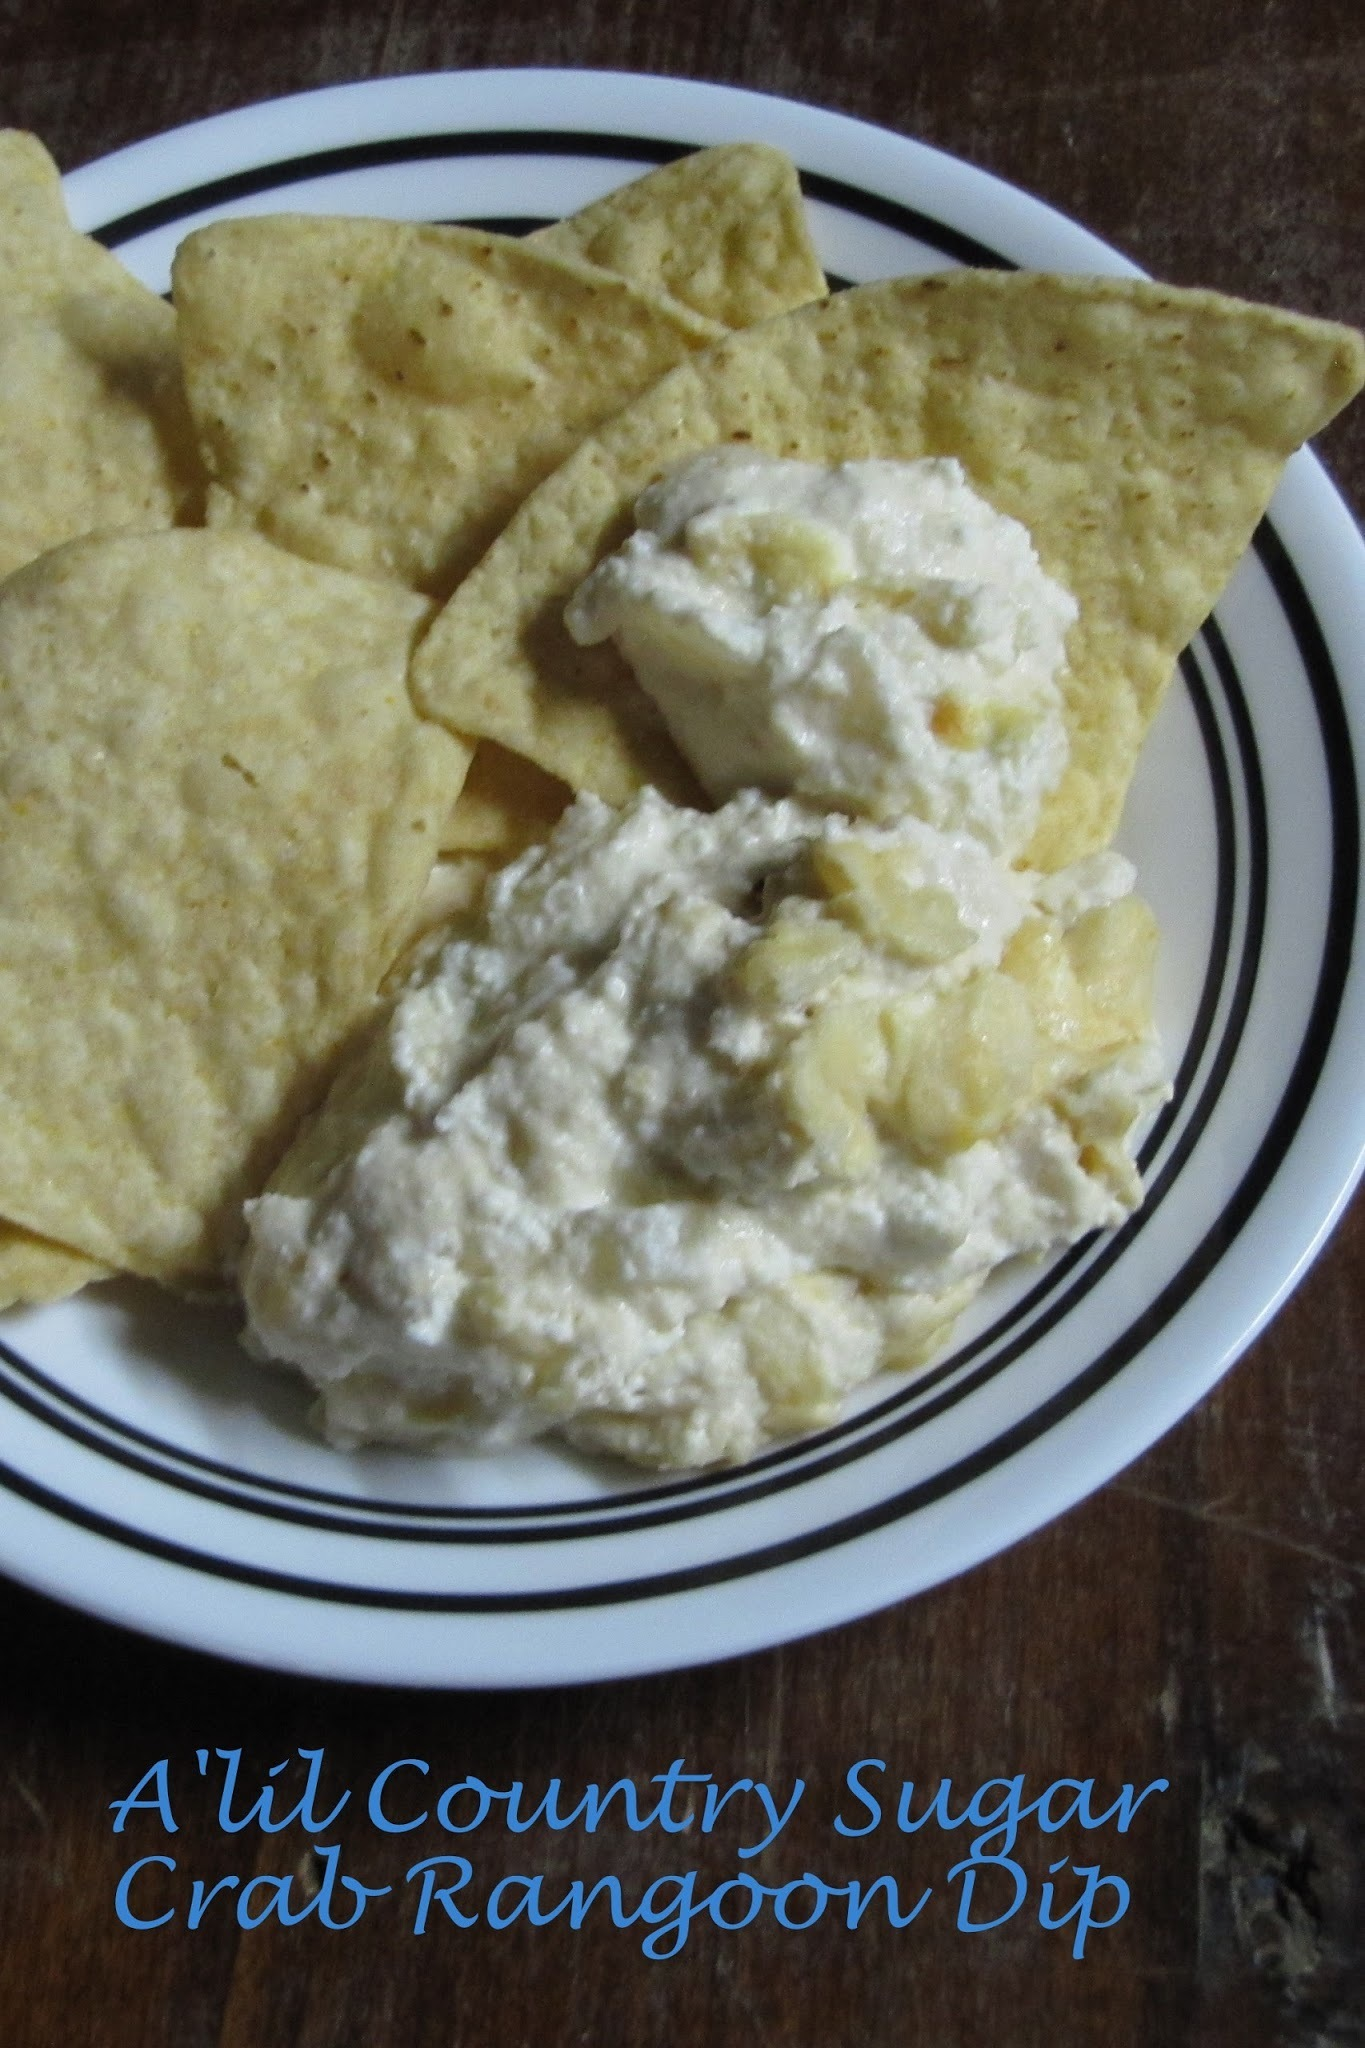 Those Little Fried Chinese Rangoons: Crab Rangoon Dip